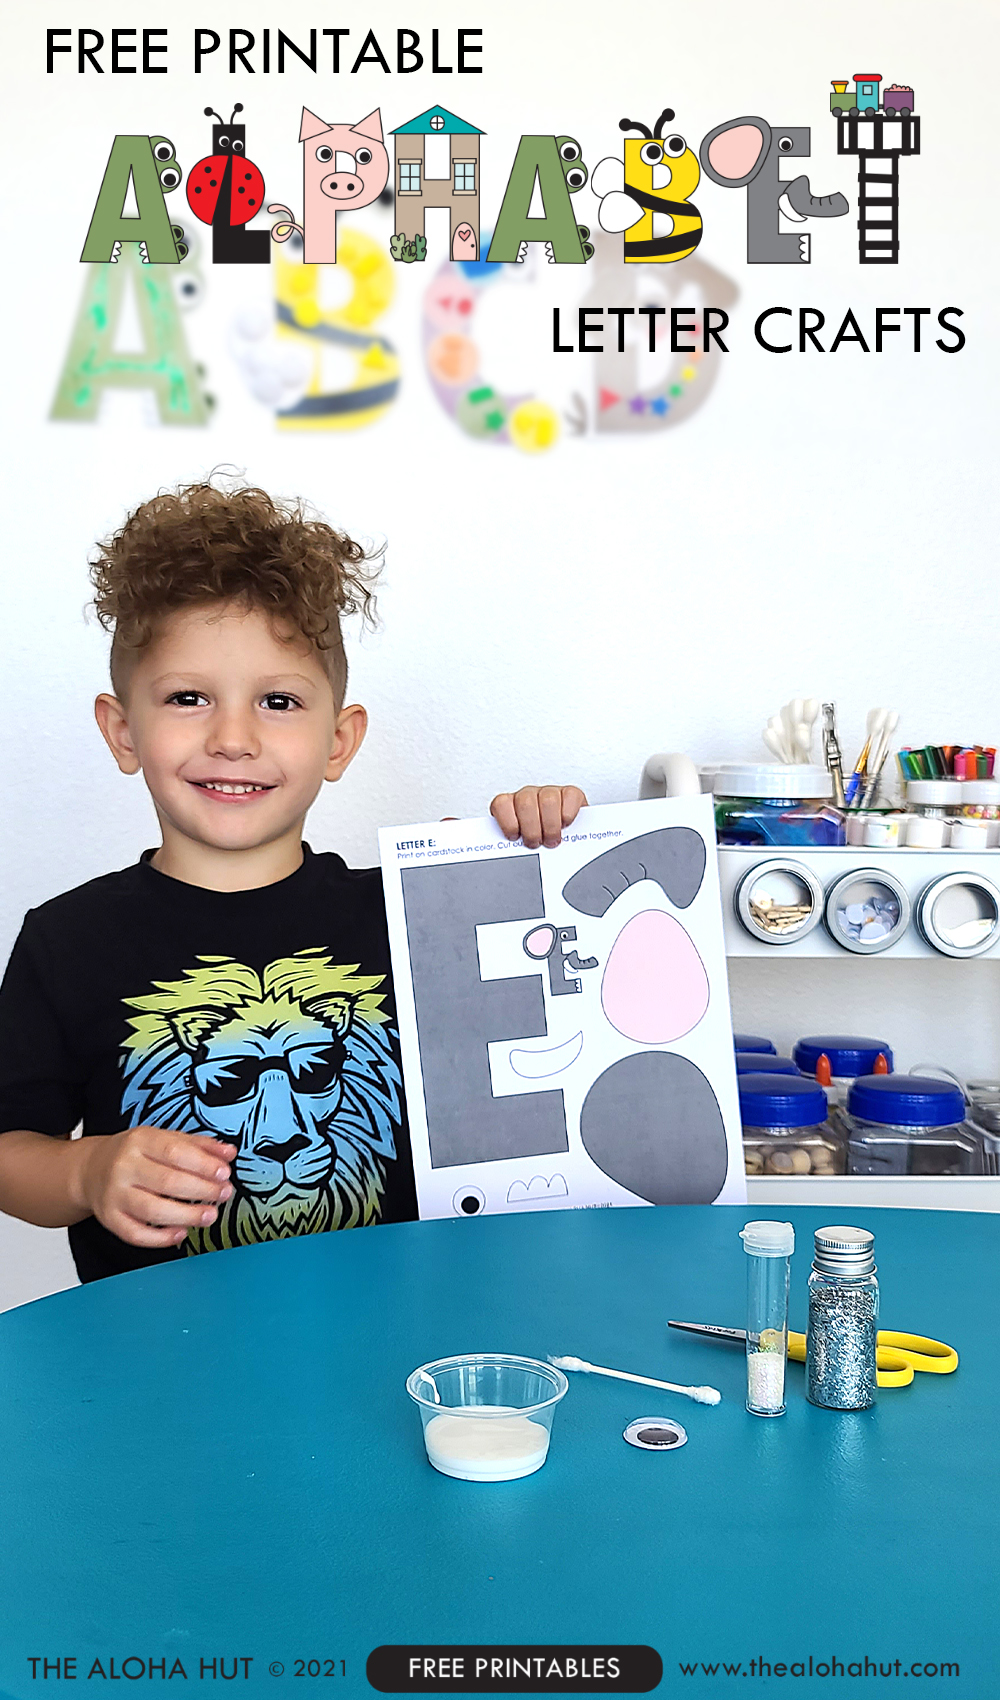 Alphabet Letter Crafts - Letter E - free printable by the Aloha Hut